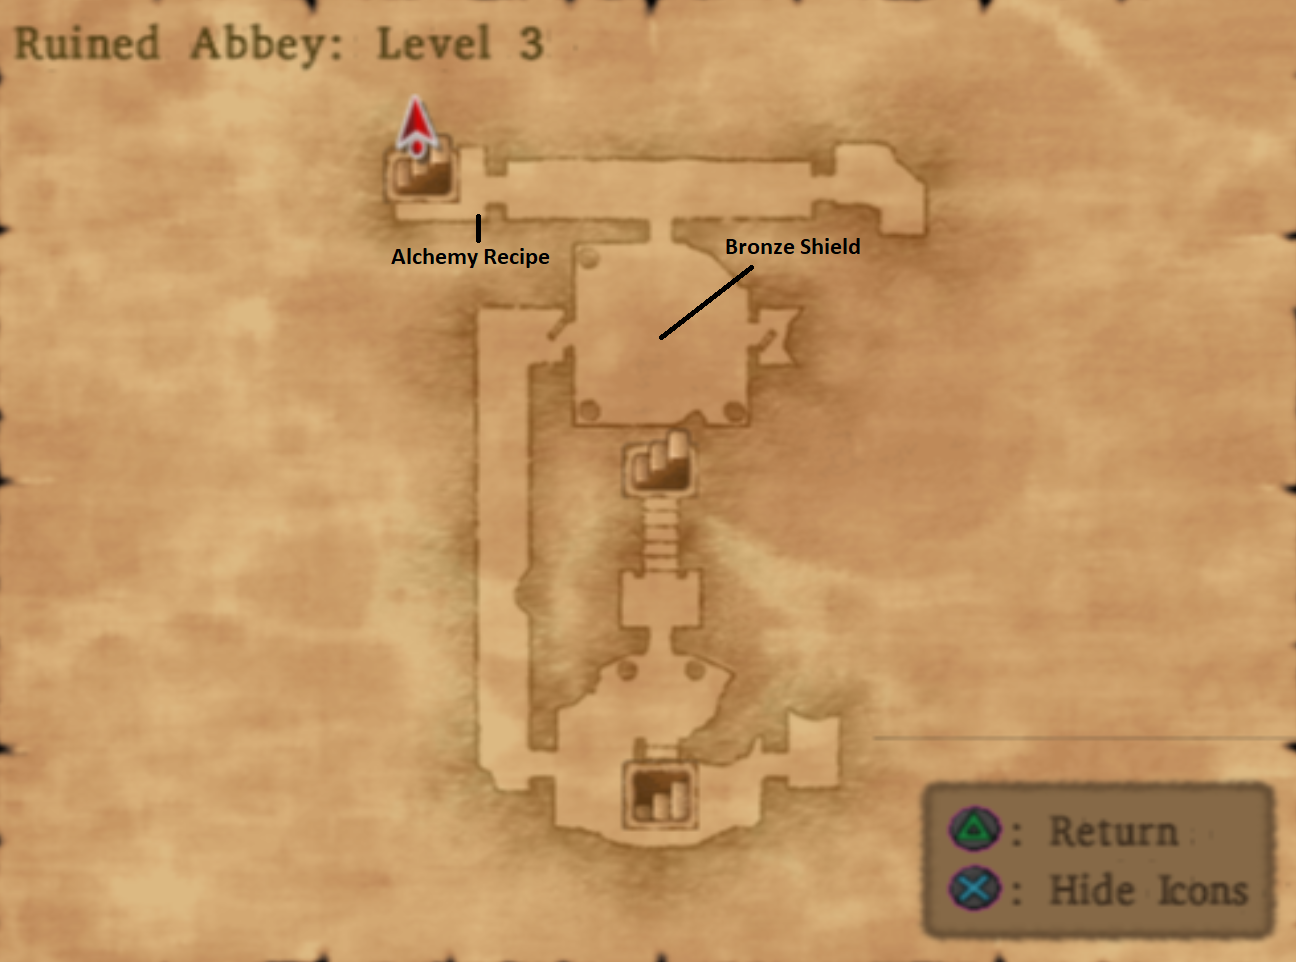 Ruined Abbey Level 3